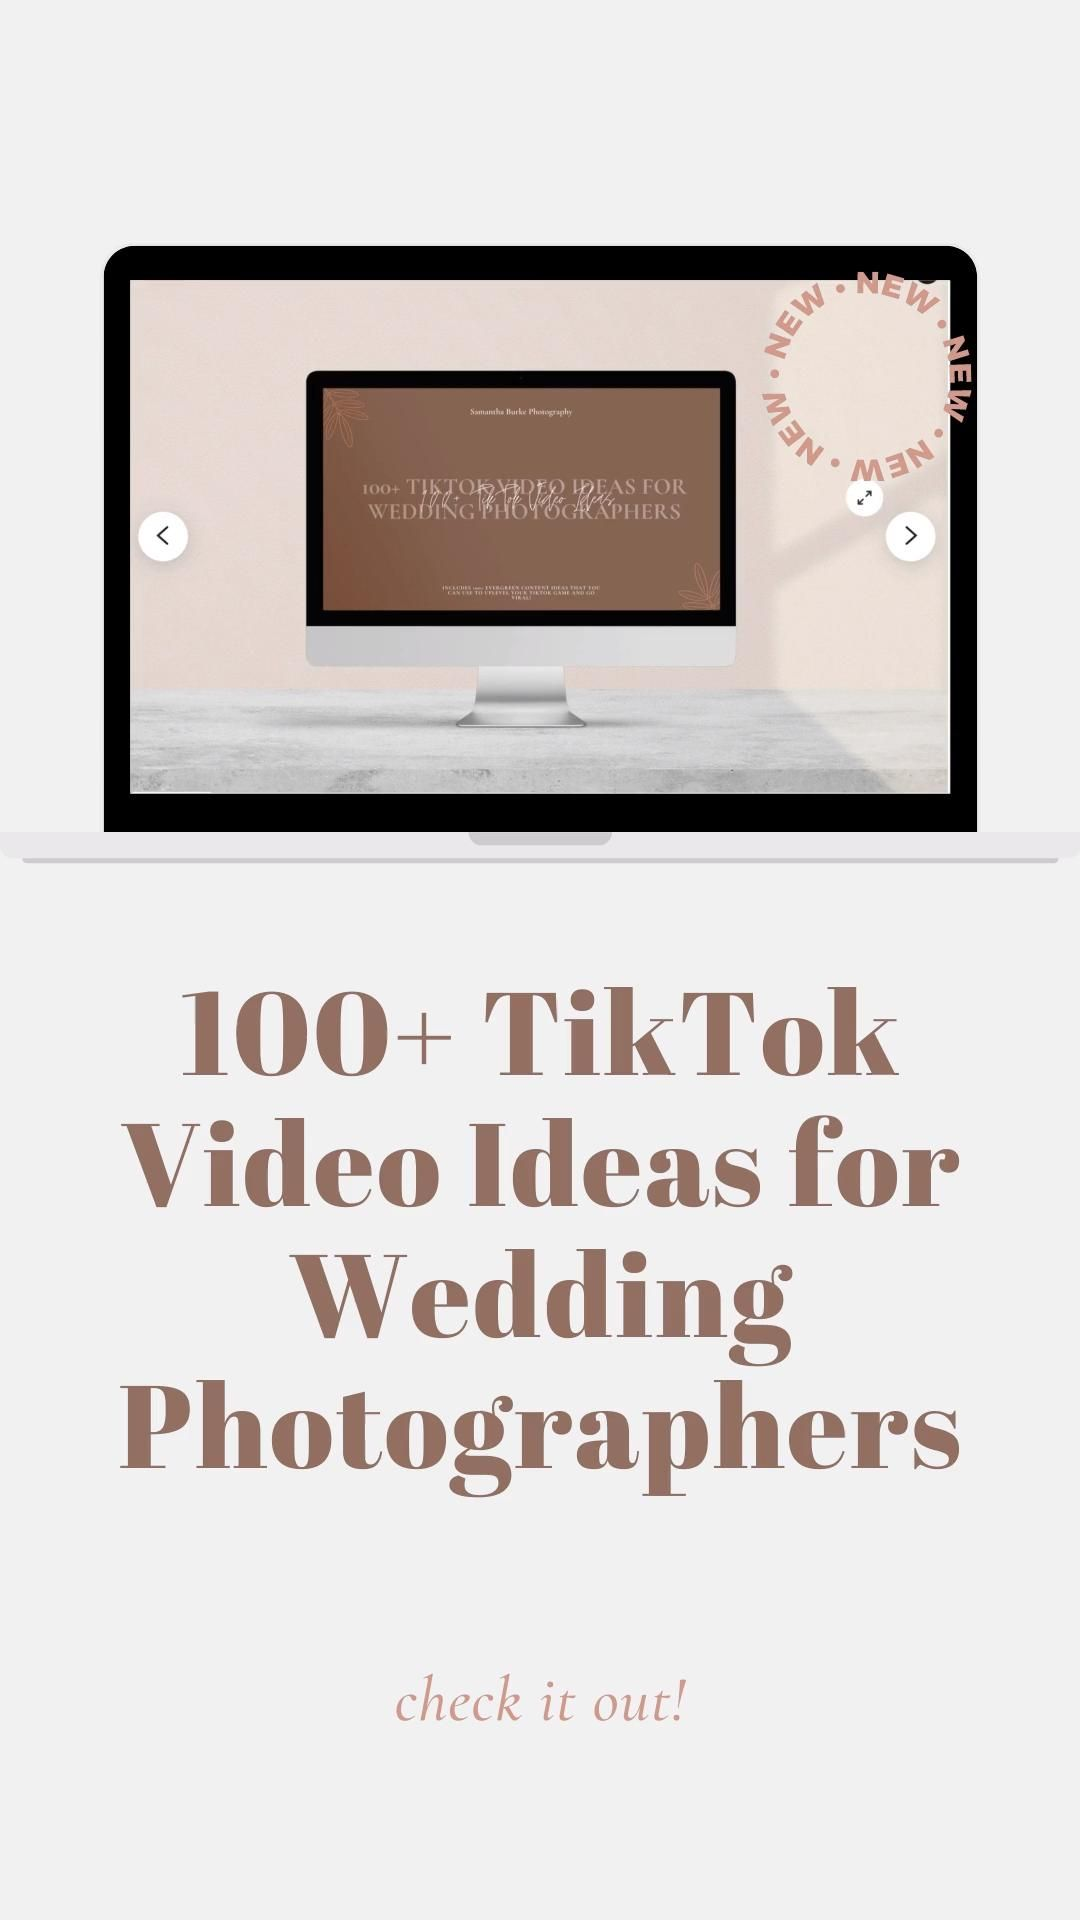 100 Tiktok Content Ideas For Wedding Photographers Video Video In 2021 Photographer Marketing Small Business Marketing Small Business Resources